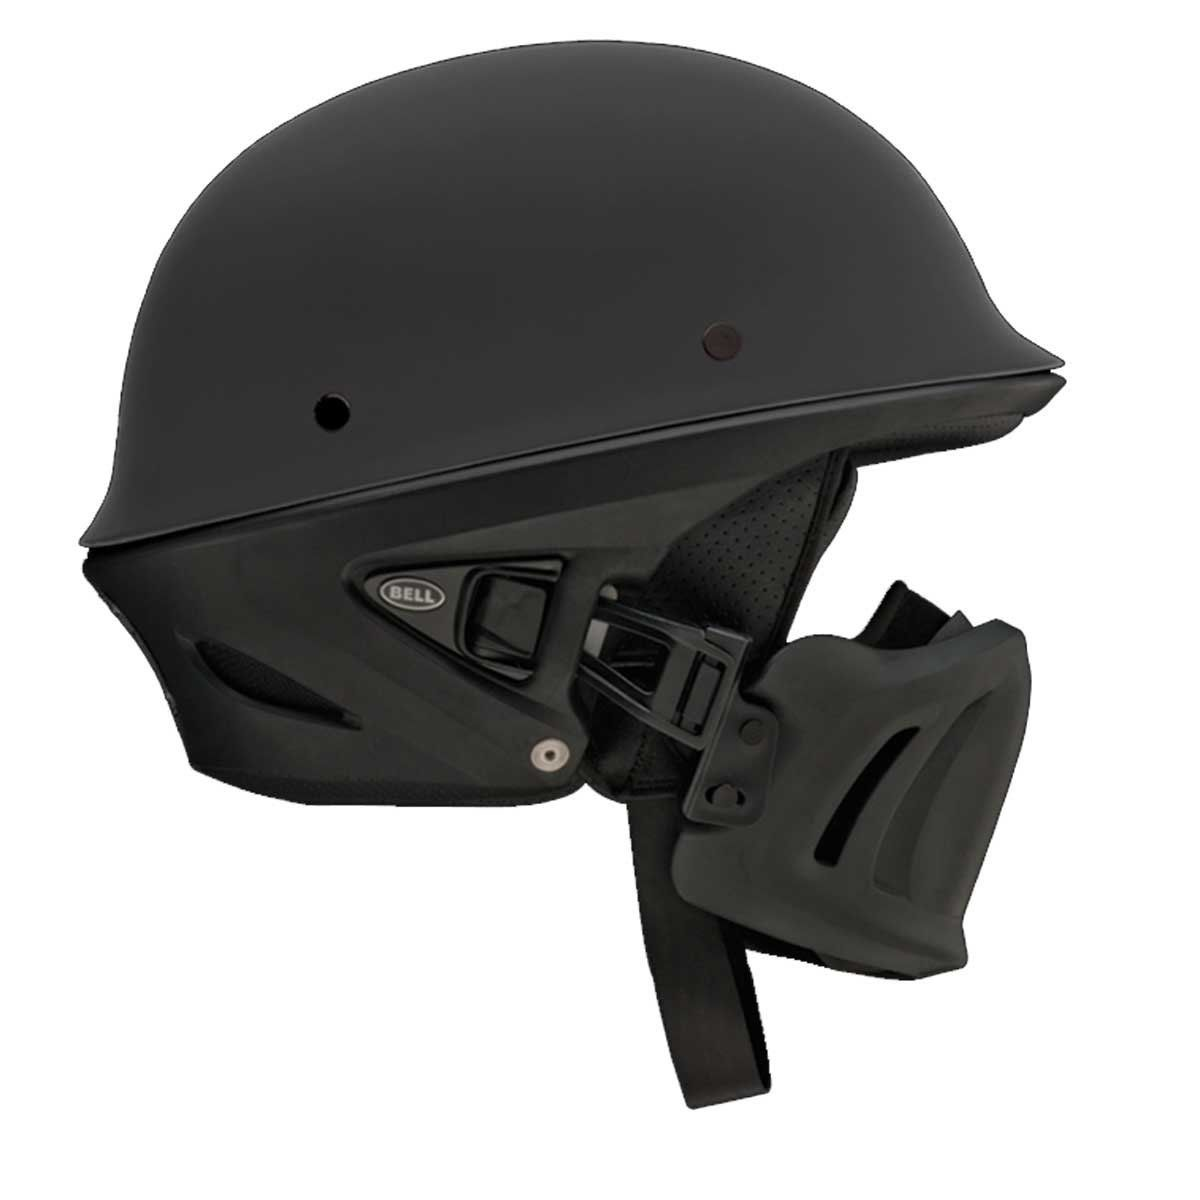 Amazon.com: Bell Rogue Unisex-Adult Half Street Helmet (Solid Matte Black,  Large) (D.O.T.-Certified): BELL: Automotive